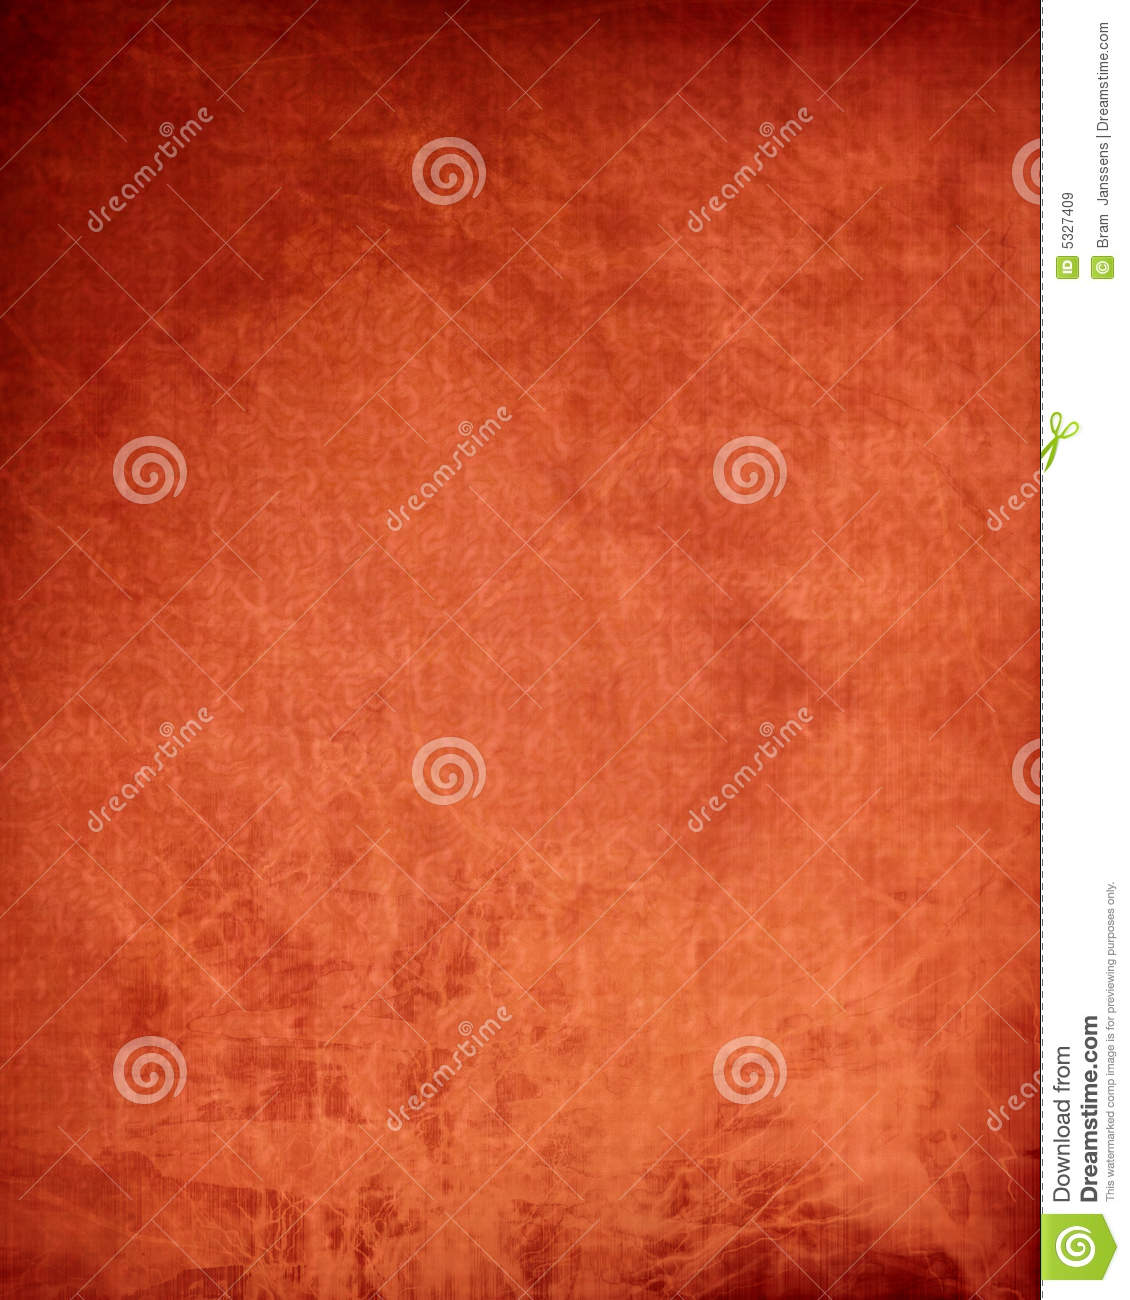 Book Cover Images Royalty Free : Red leather book cover royalty free stock images image